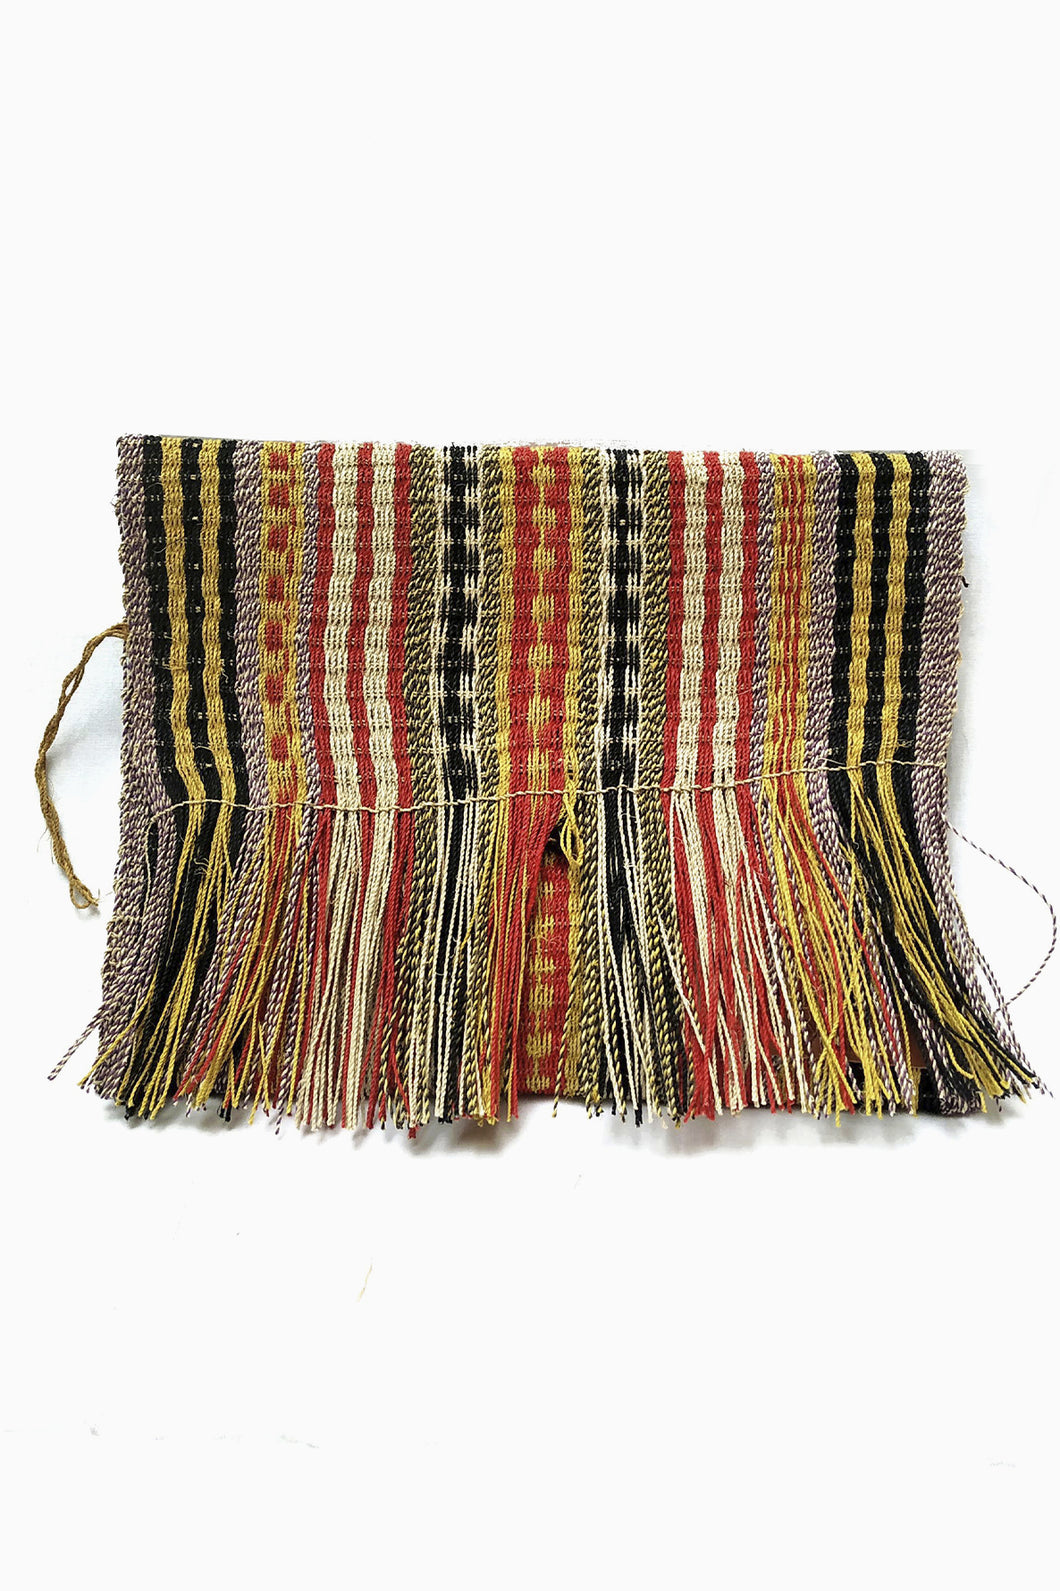 Mulitcolored Patterned Chaguar Clutch Bag with Fringe ends.